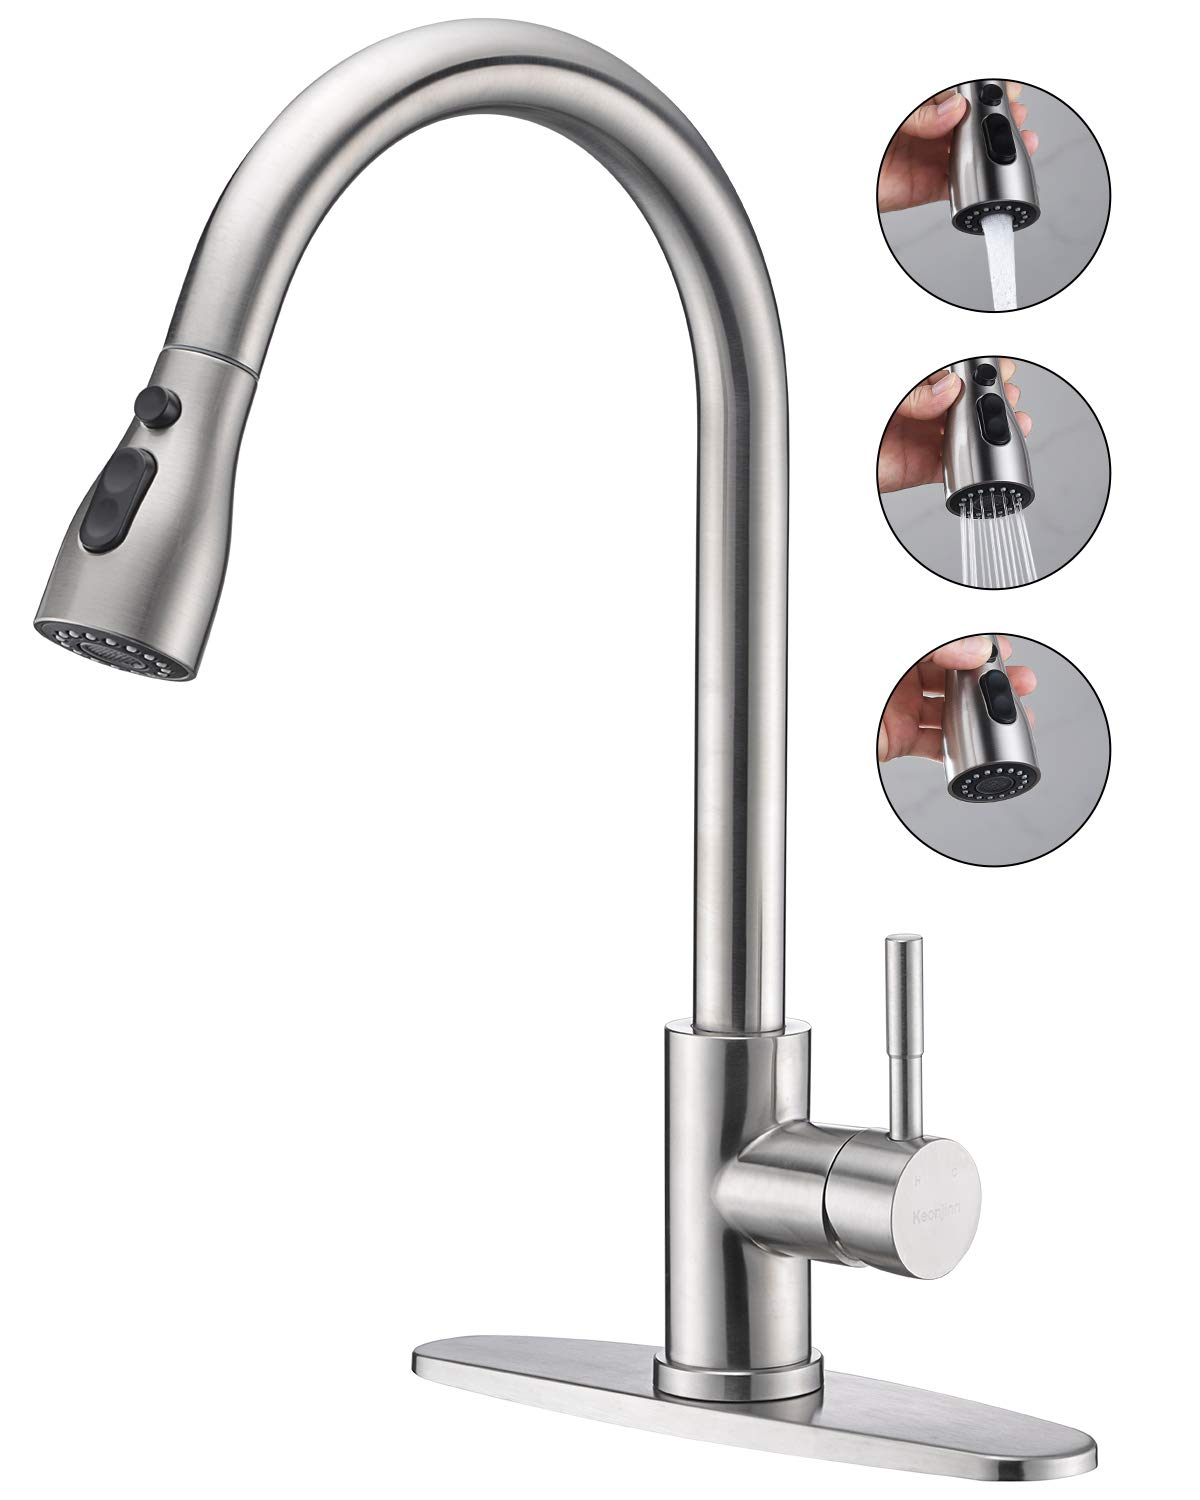 Keonjinn Stainless Steel Kitchen Faucets,High Arc Single Handle Pull out Brushed Nickel Kitchen Faucet,Single Level with Pull down Sprayer by Keonjinn